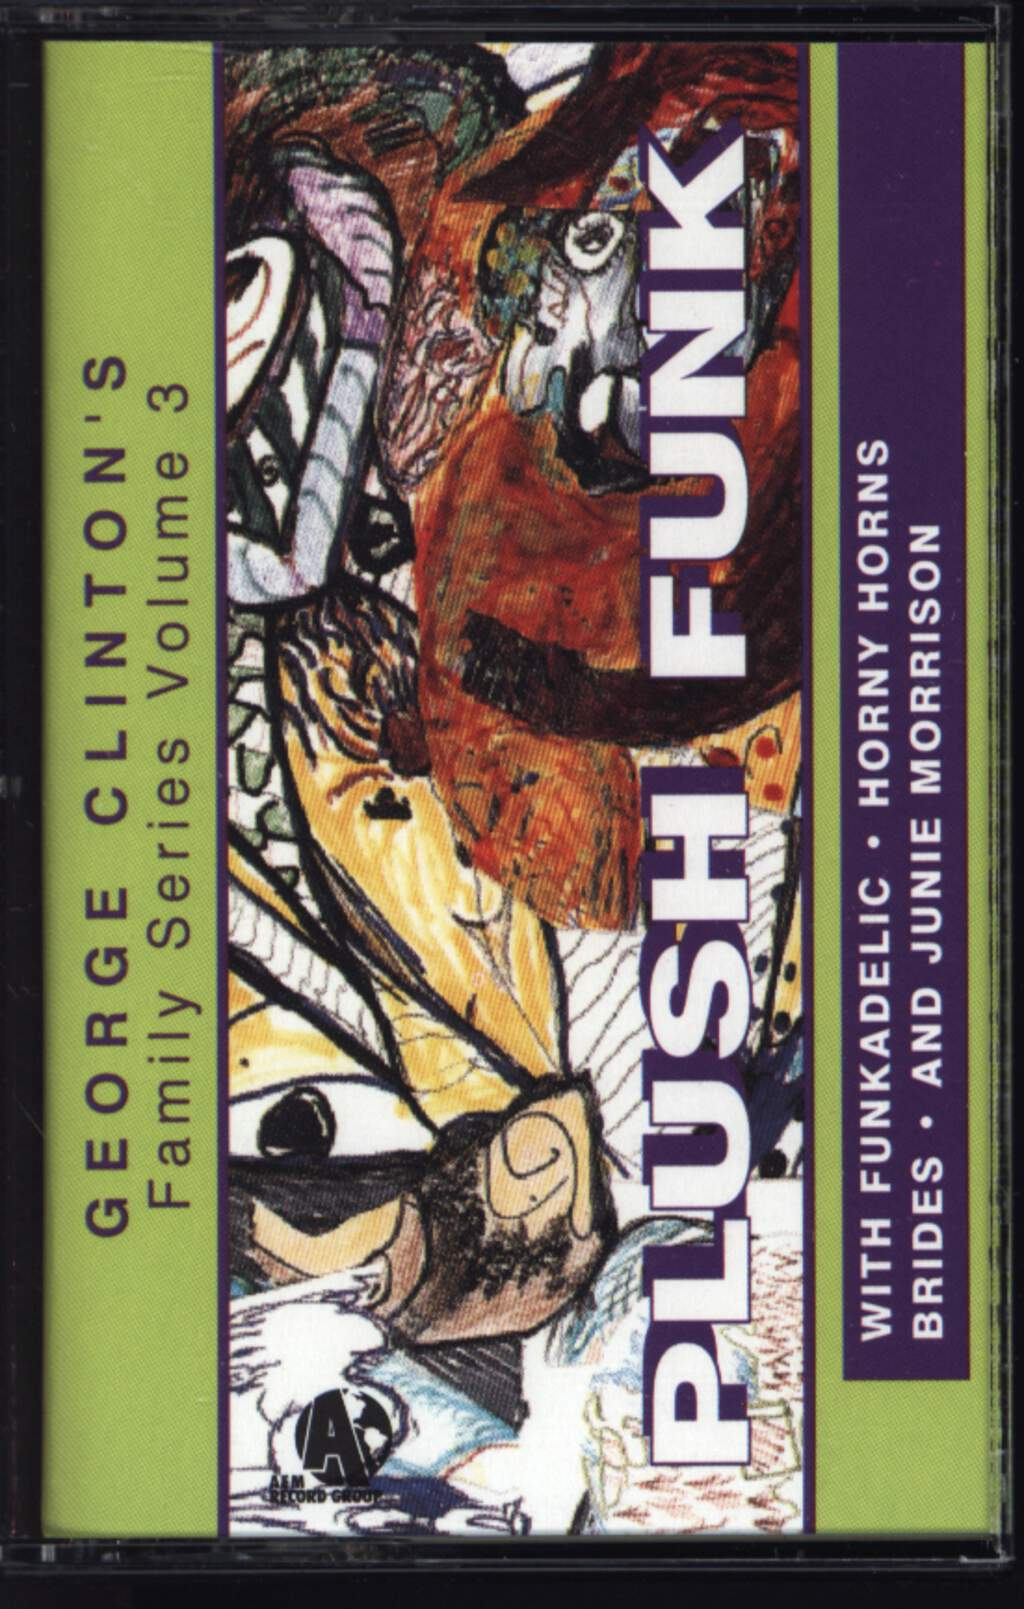 Various: George Clinton Family Series Volume 3 - Plush Funk, Compact Cassette